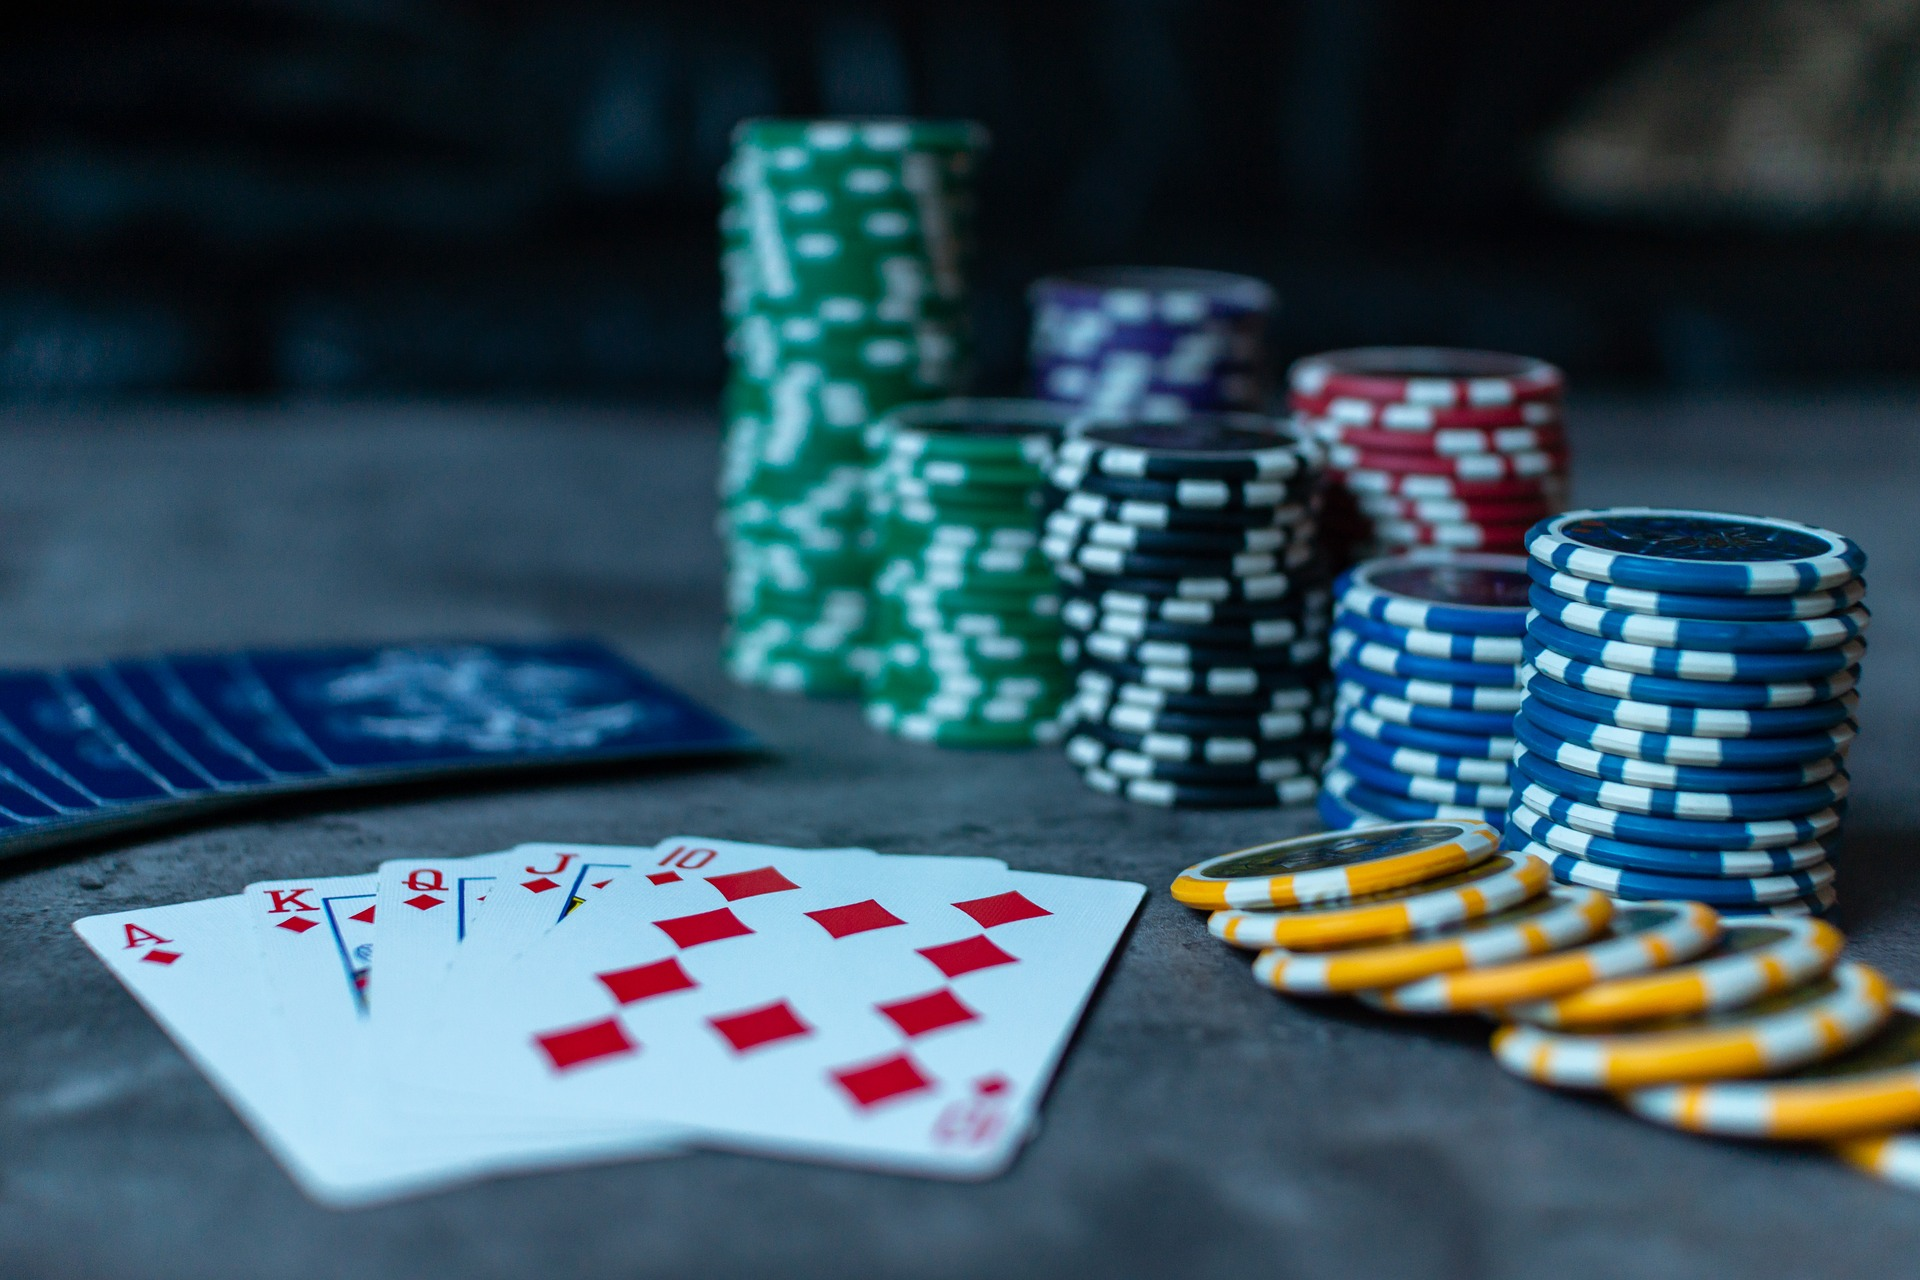 Online Poker Sites: Why Digital Marketing Has Never Been More Important | Fupping